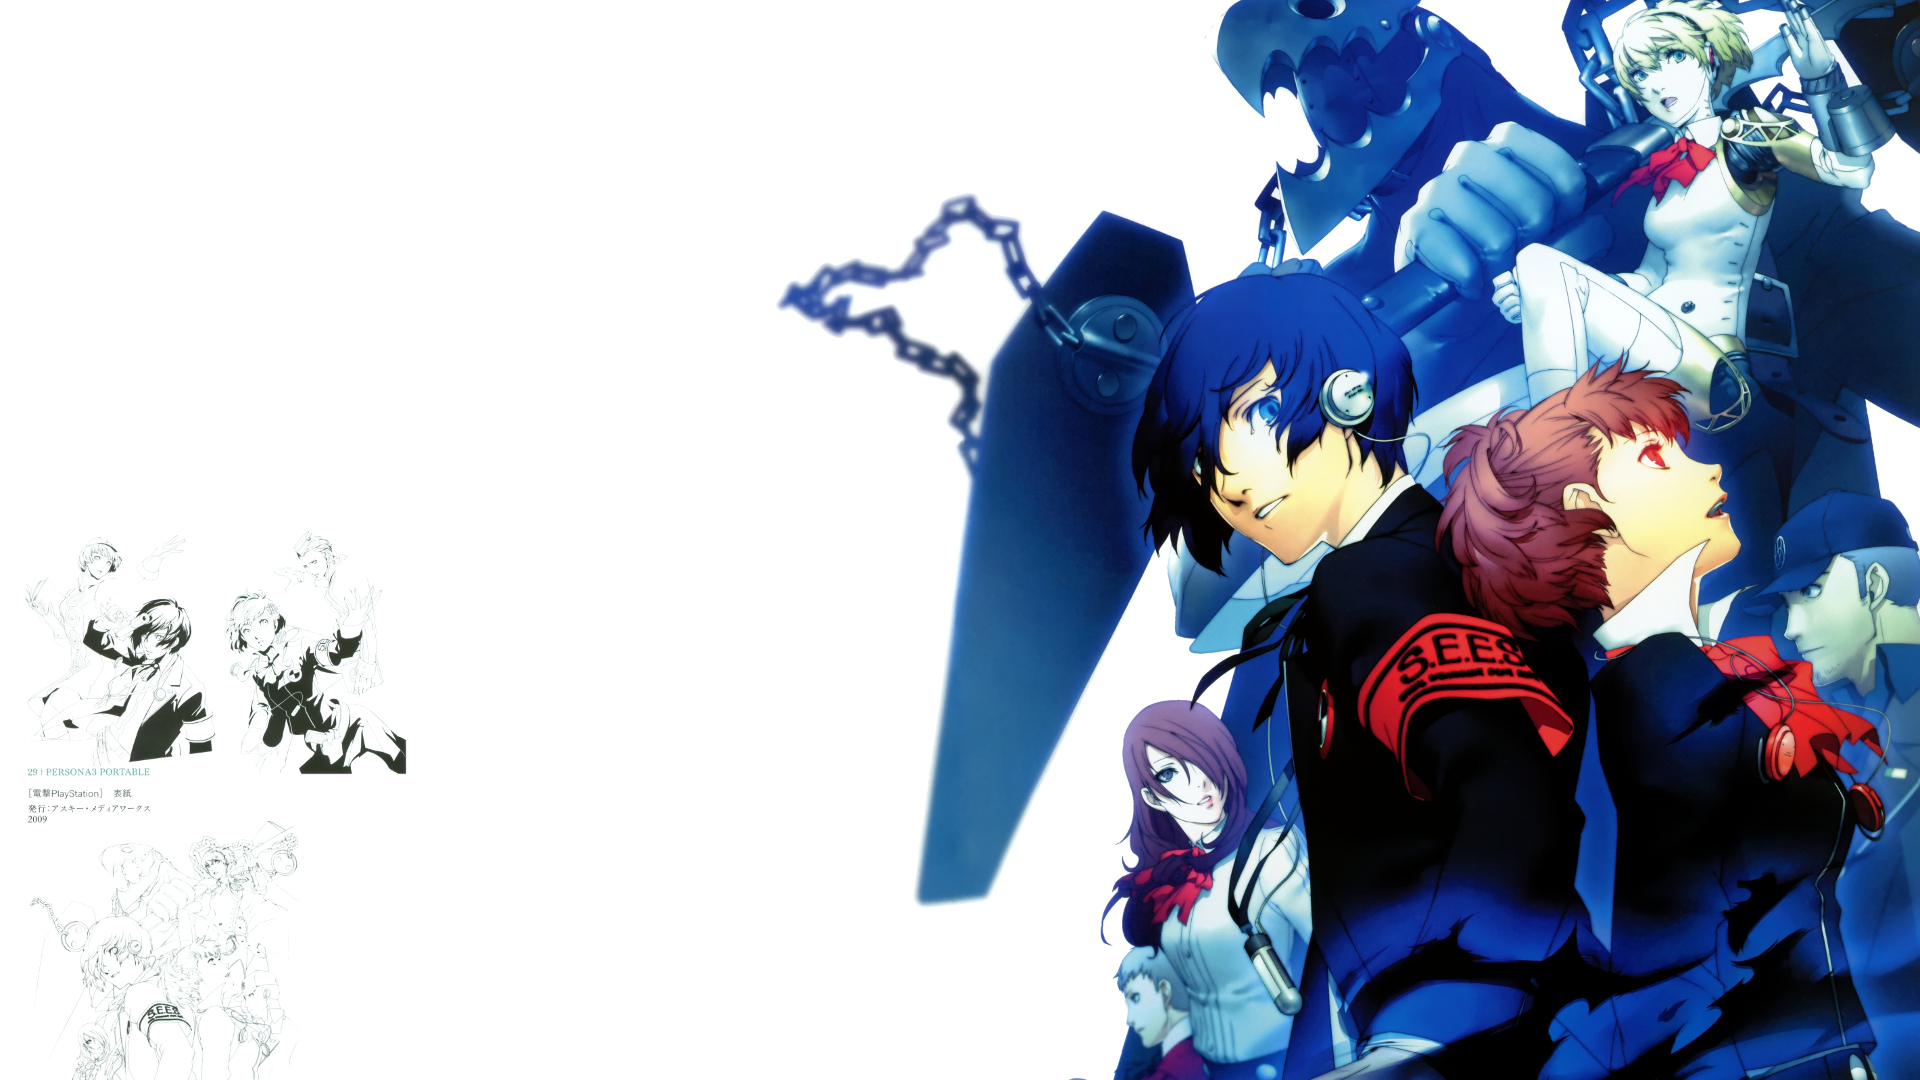 Persona 3 iphone 5 wallpaper - Video Game Shin Megami Tensei Persona 3 Portable Wallpaper